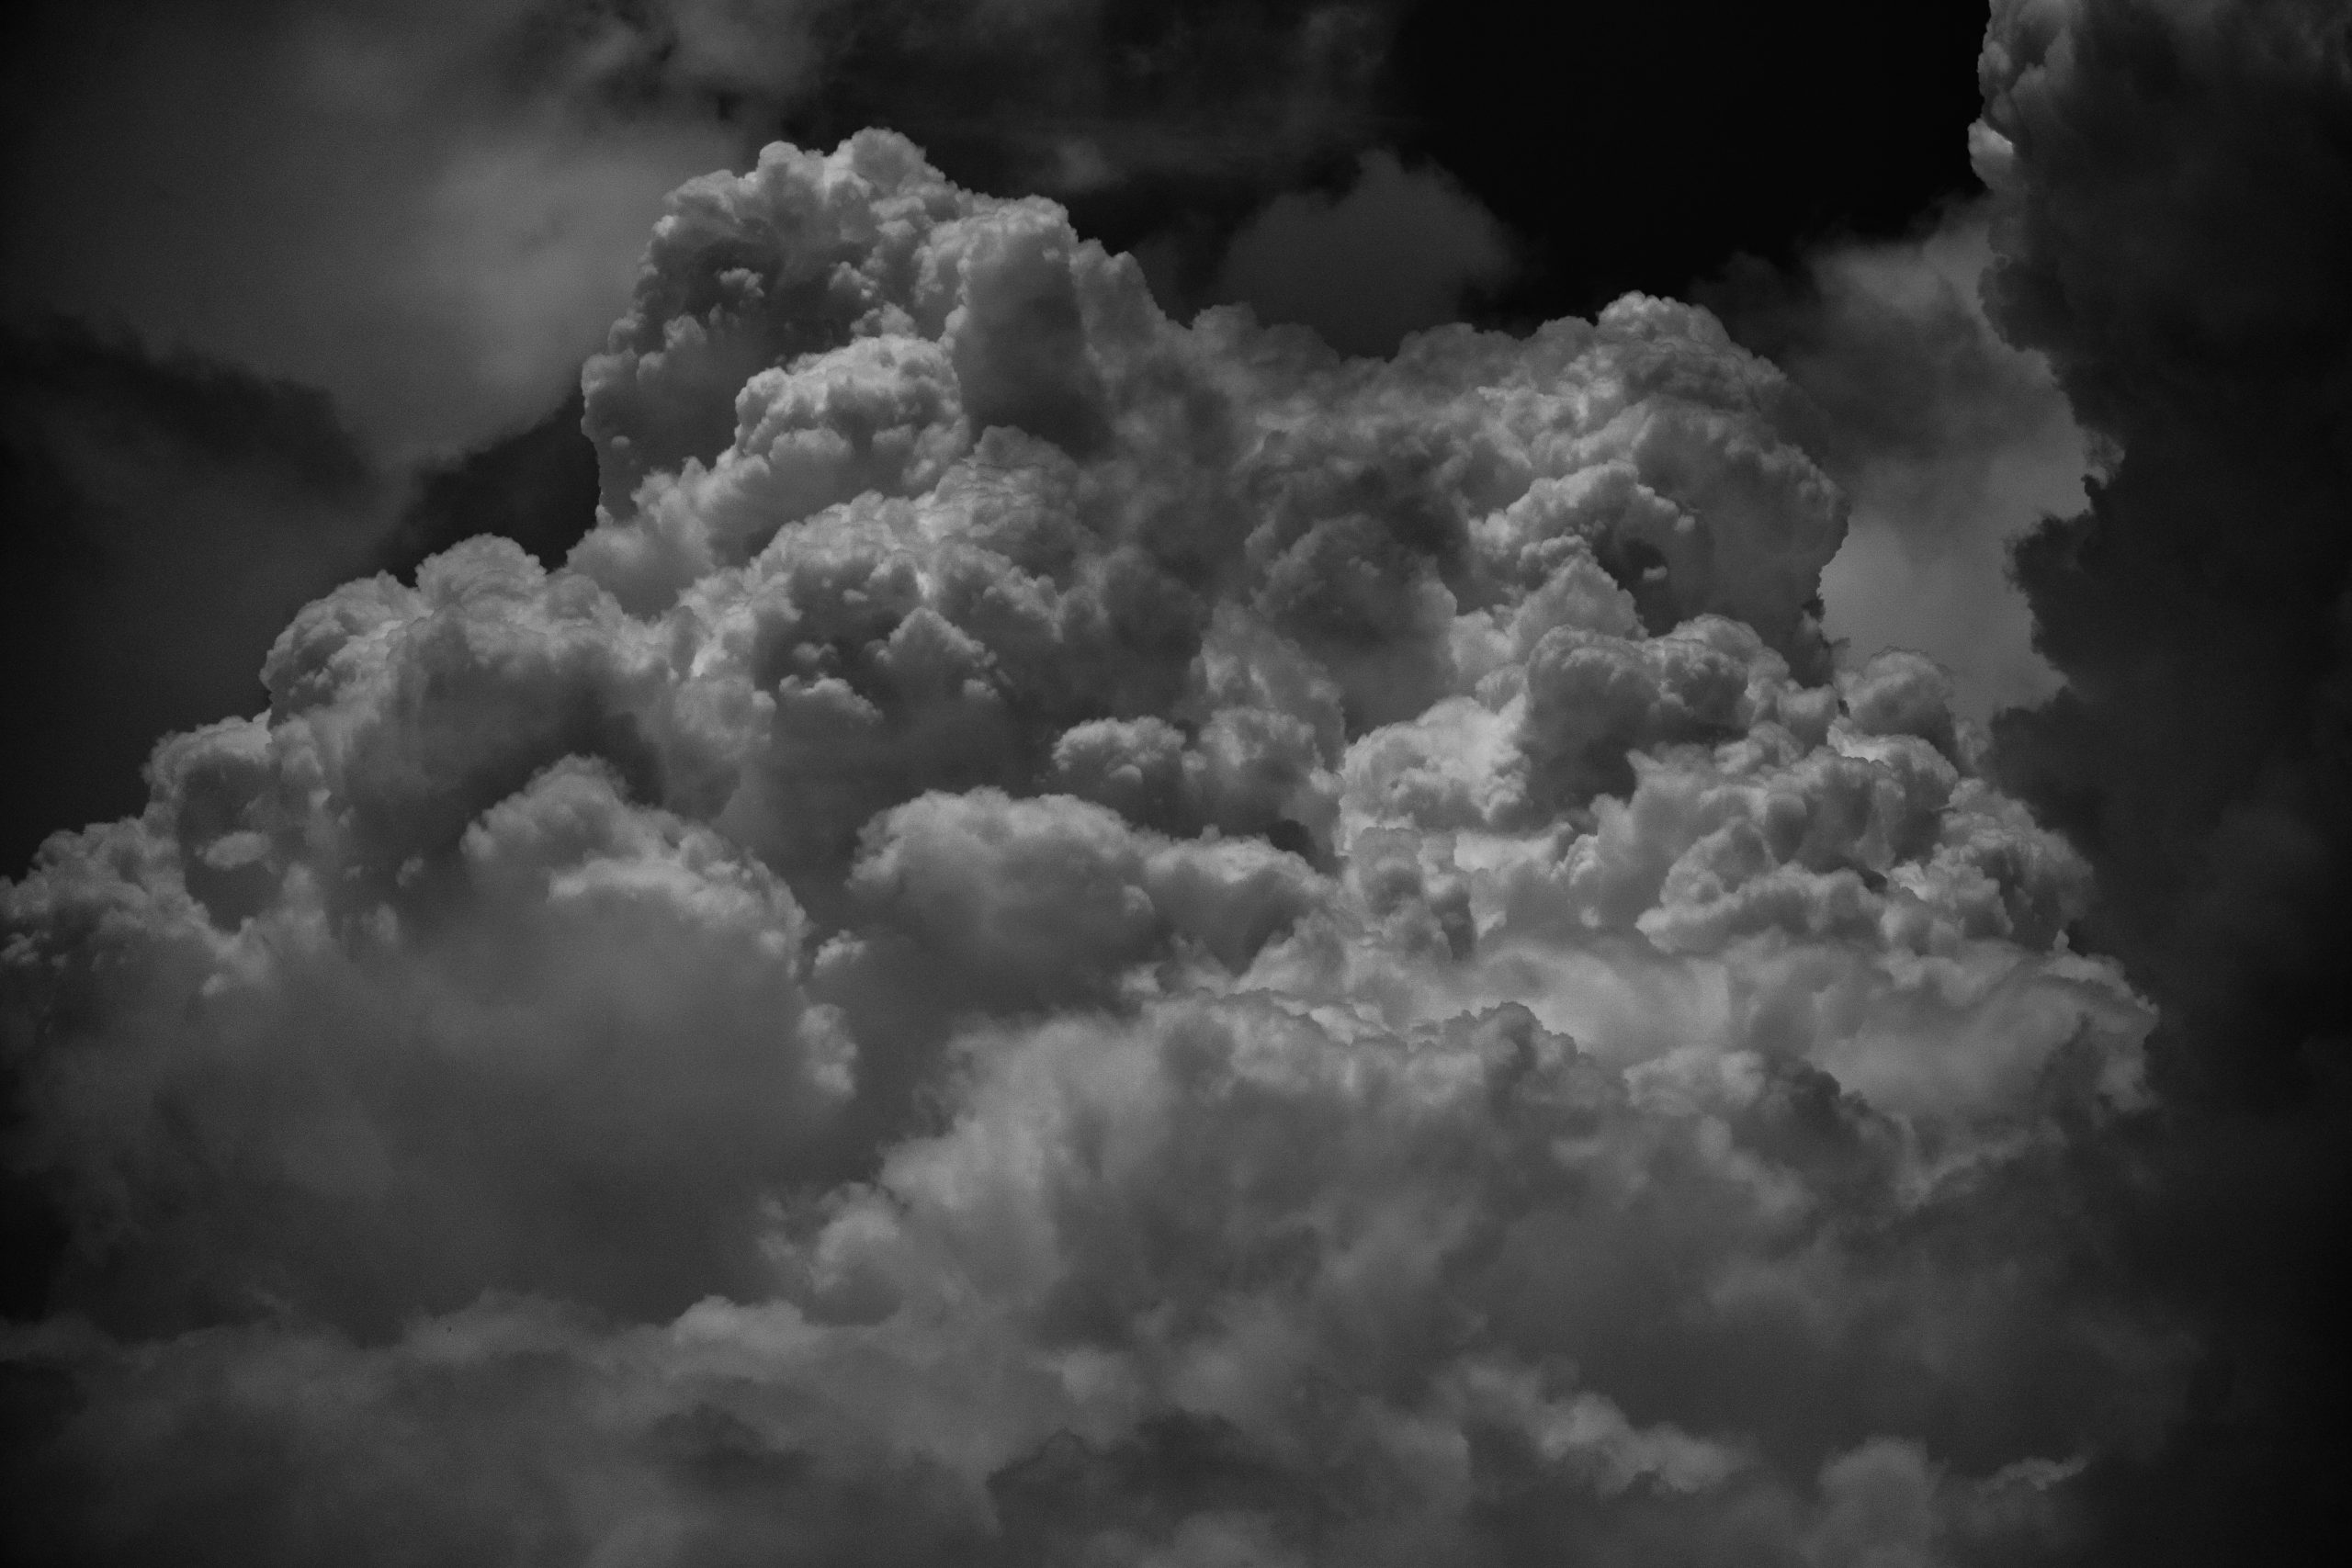 Stormy clouds in sky